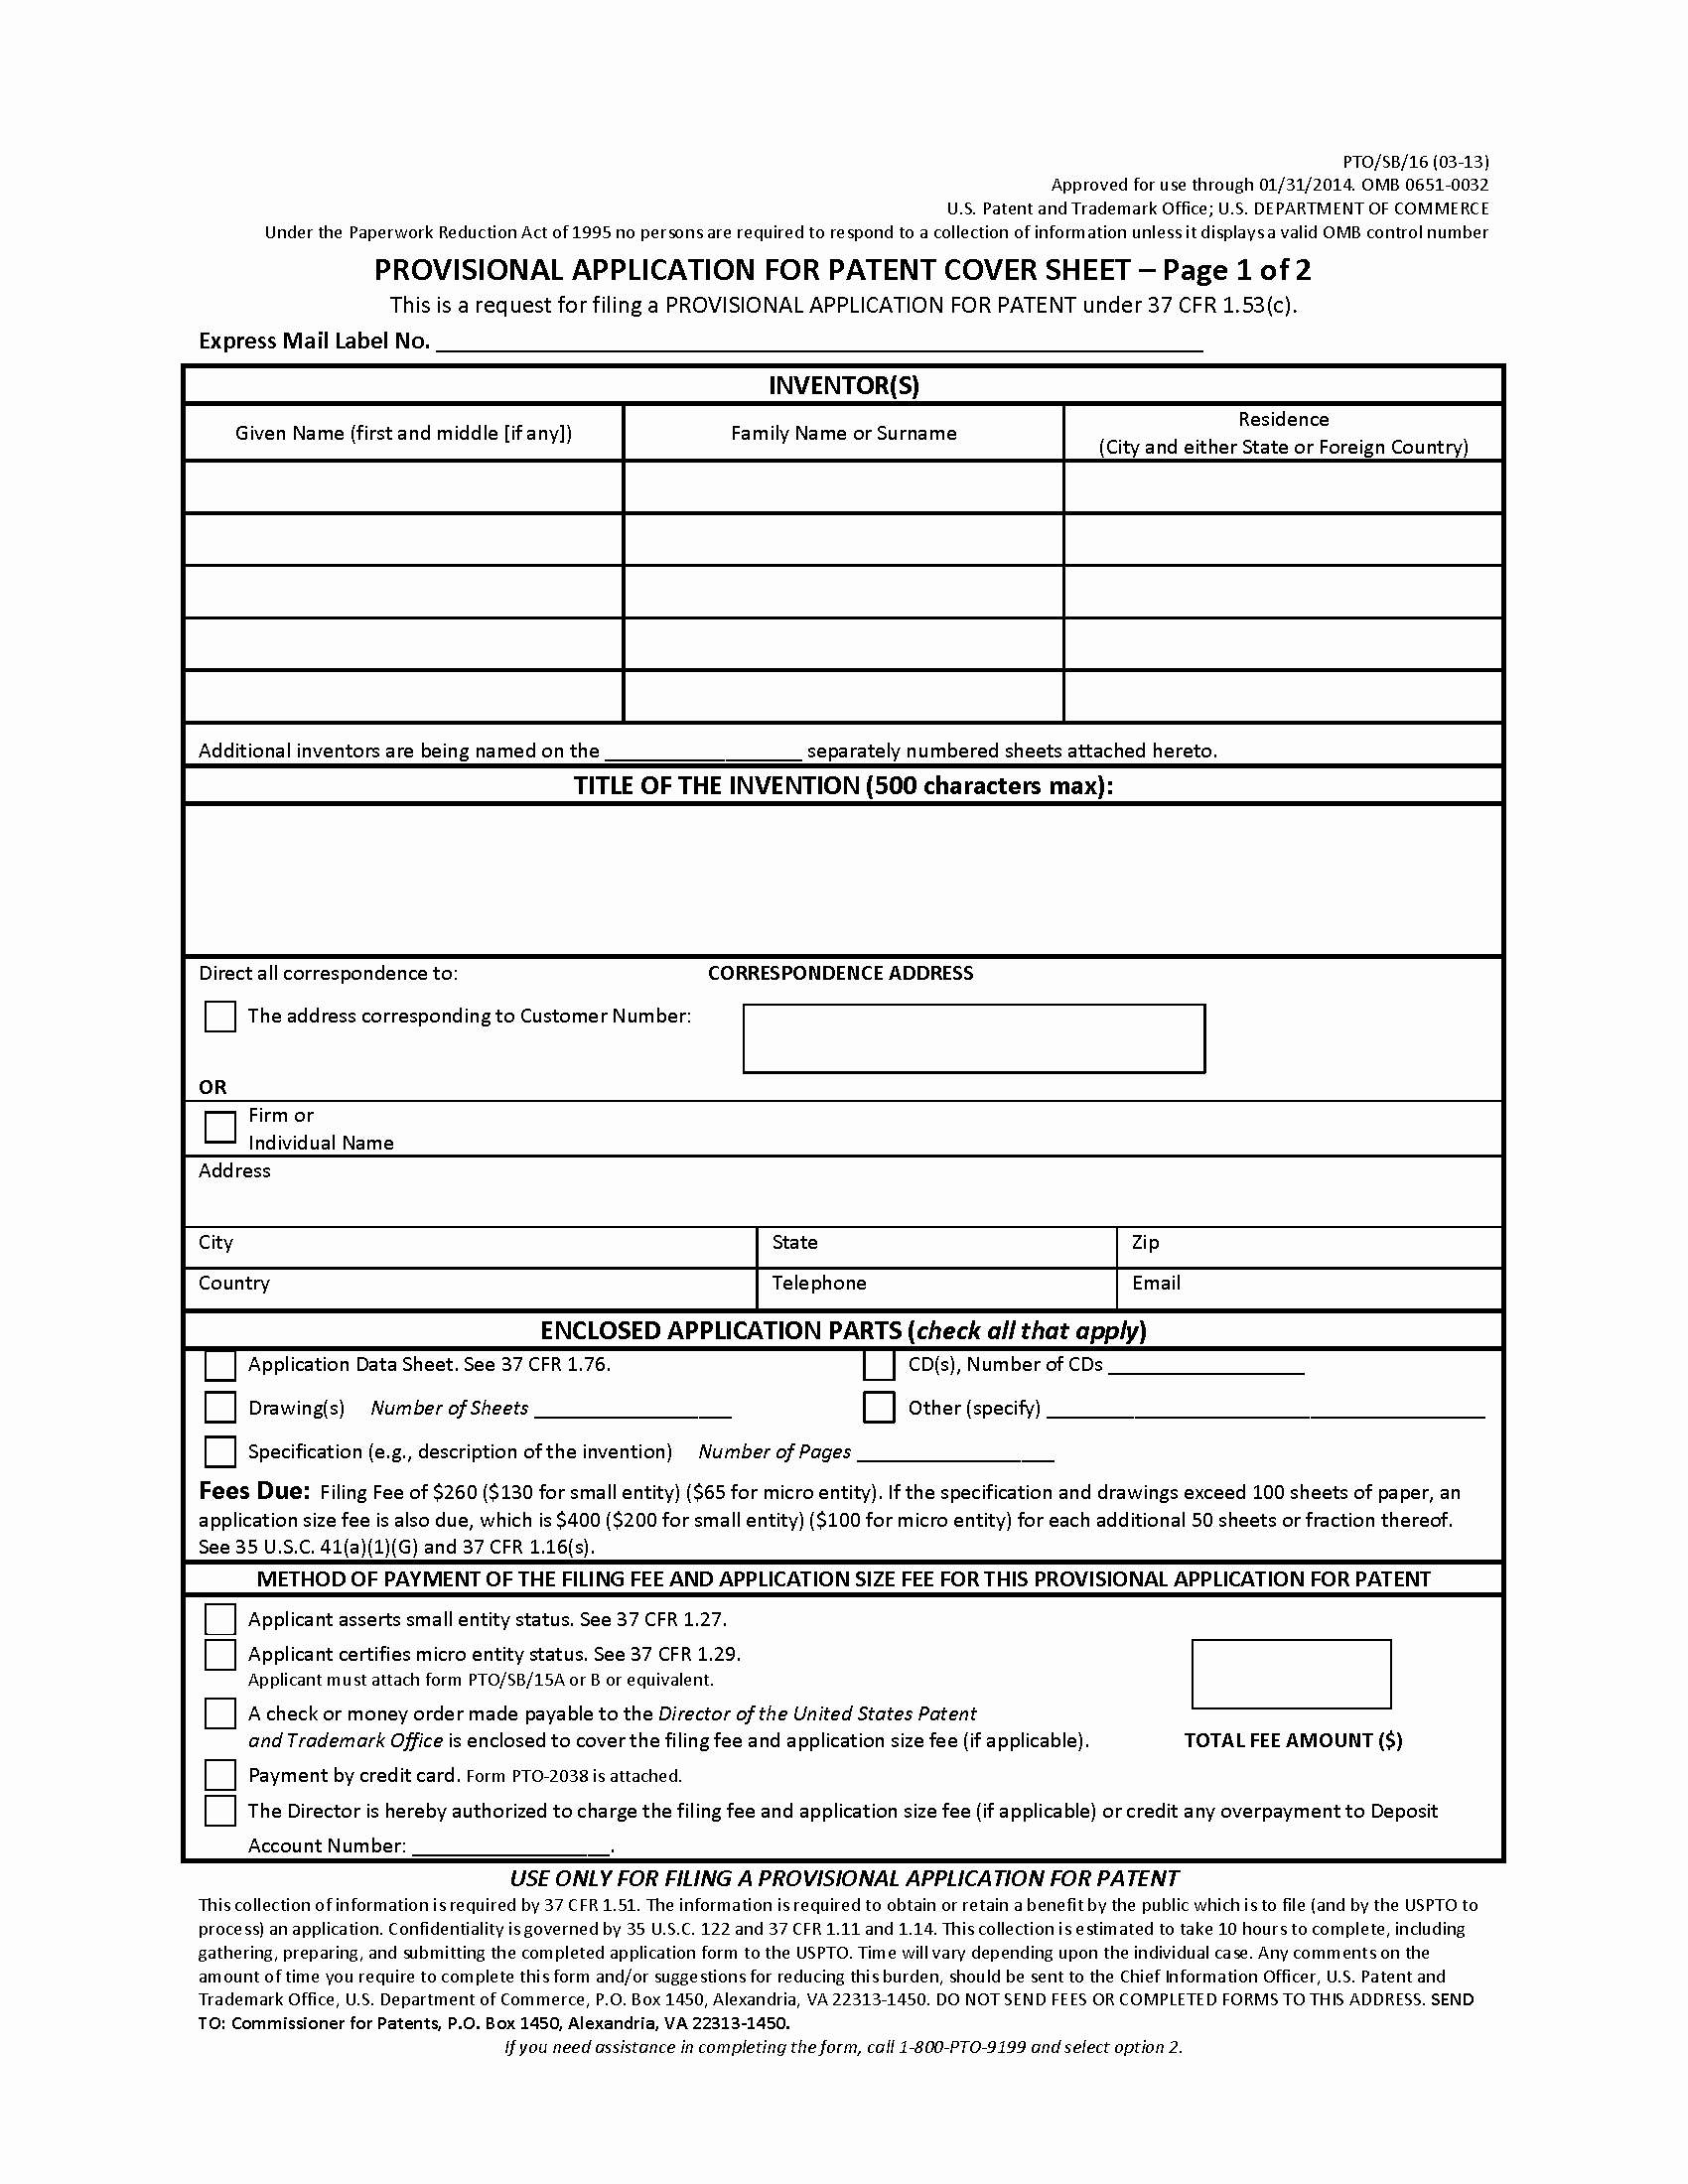 Provisional Patent Application form Awesome Mpep 201 04 Provisional Application Nov 2015 Bitlaw